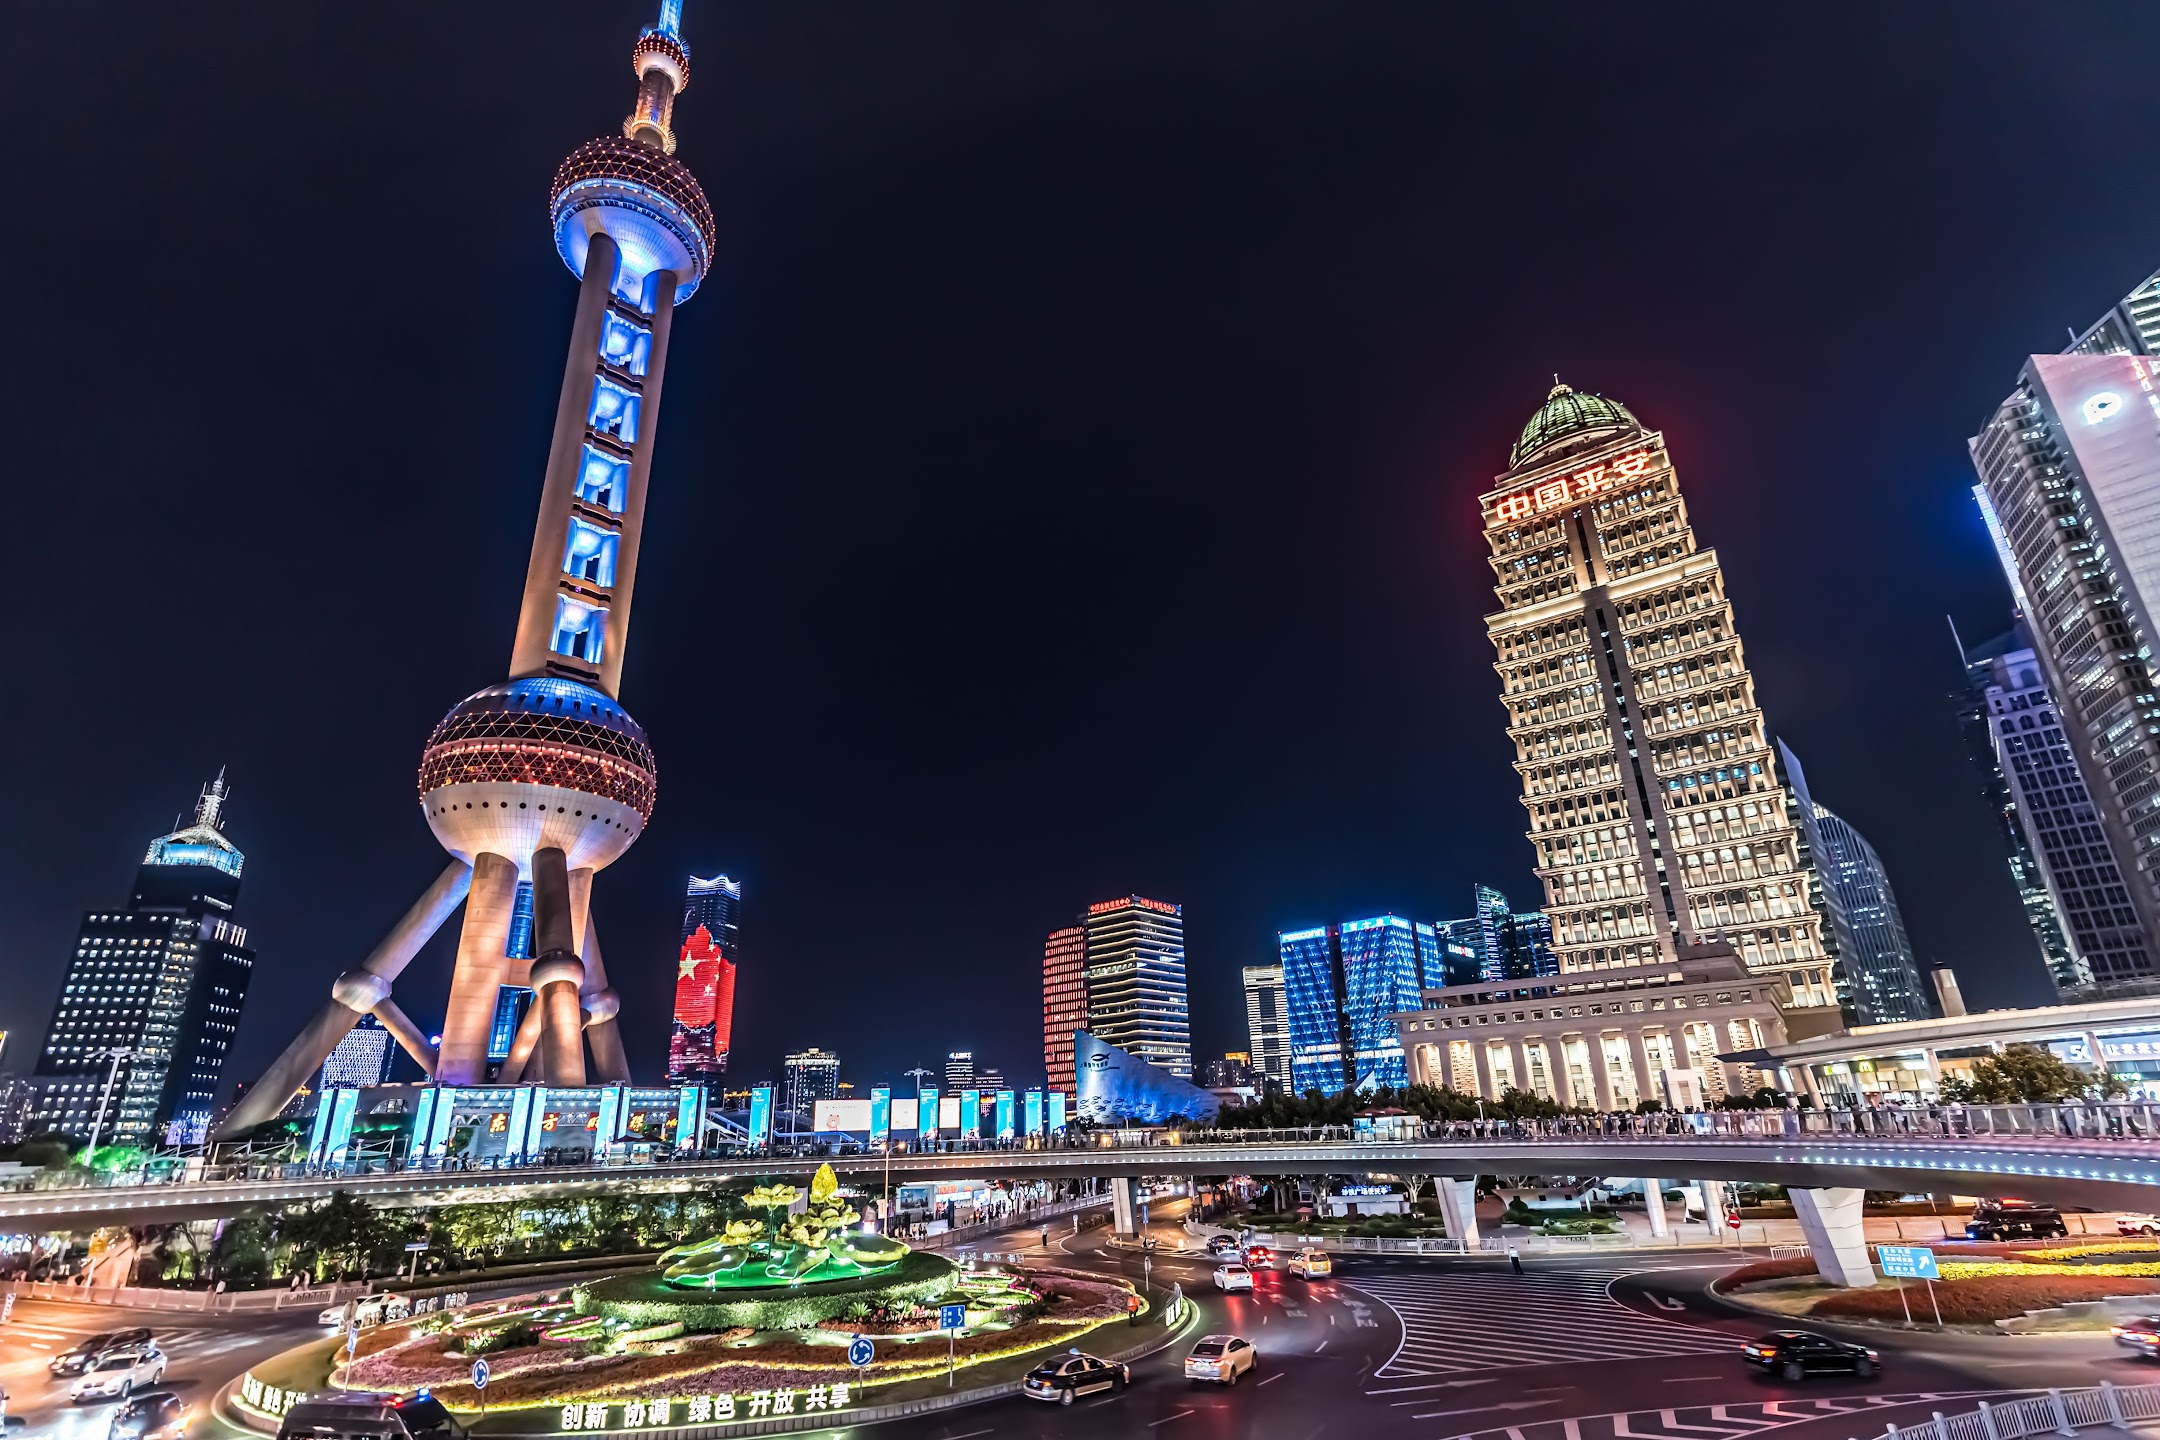 Shanghai Oriental Pearl Tower light-up2